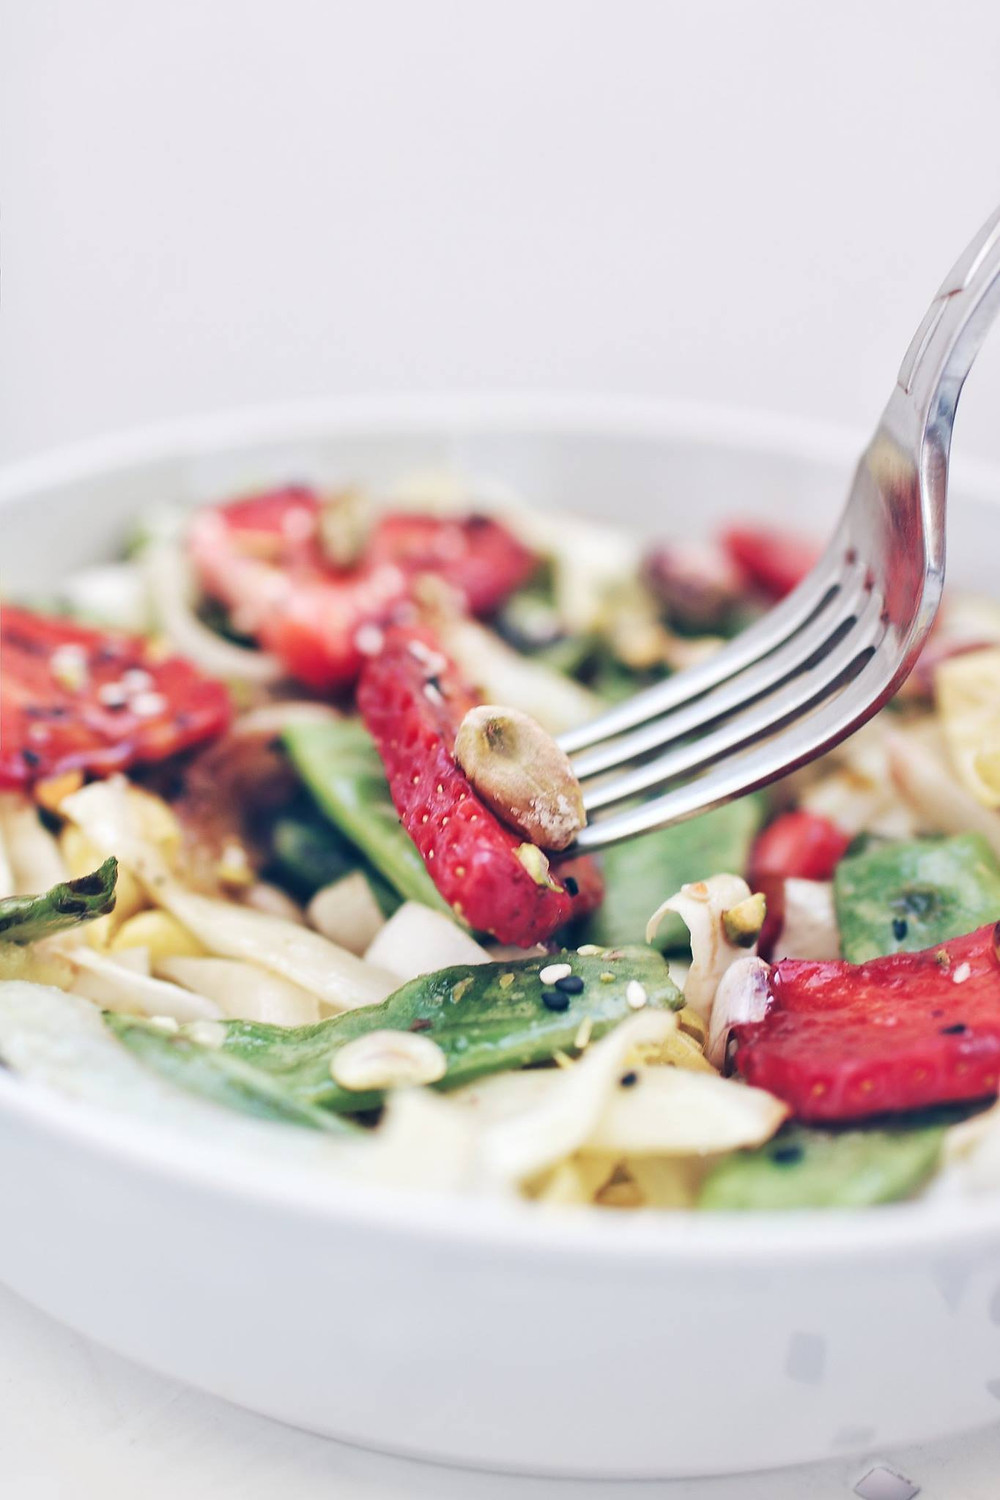 A fork grabs a piece of strawberry and pistachio from a spring salad.